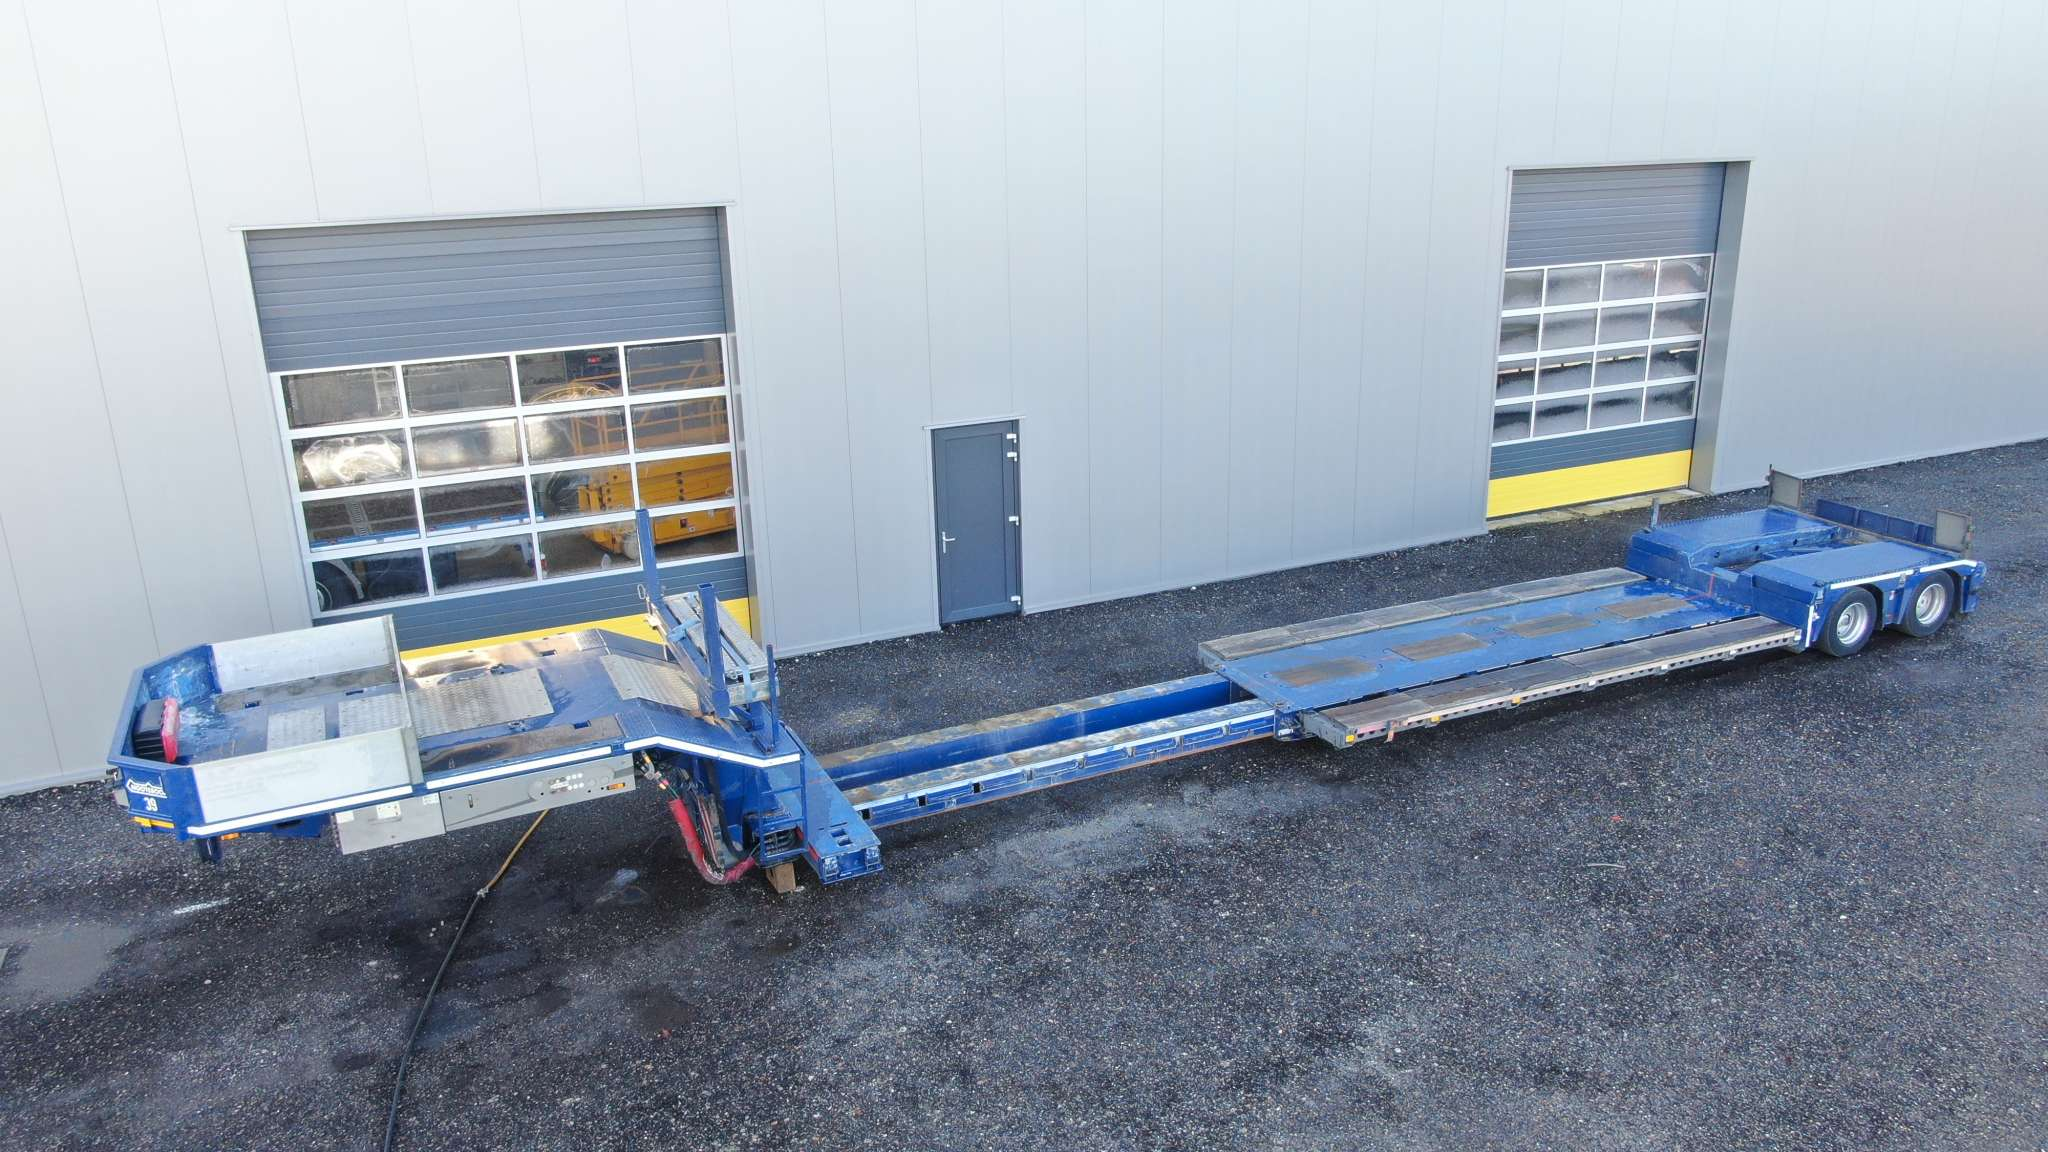 2 Axle lowbed for an agriculture harvester | Loadfloor height 435 mm | extendable till 11 m net loading length | payload 25 Ton